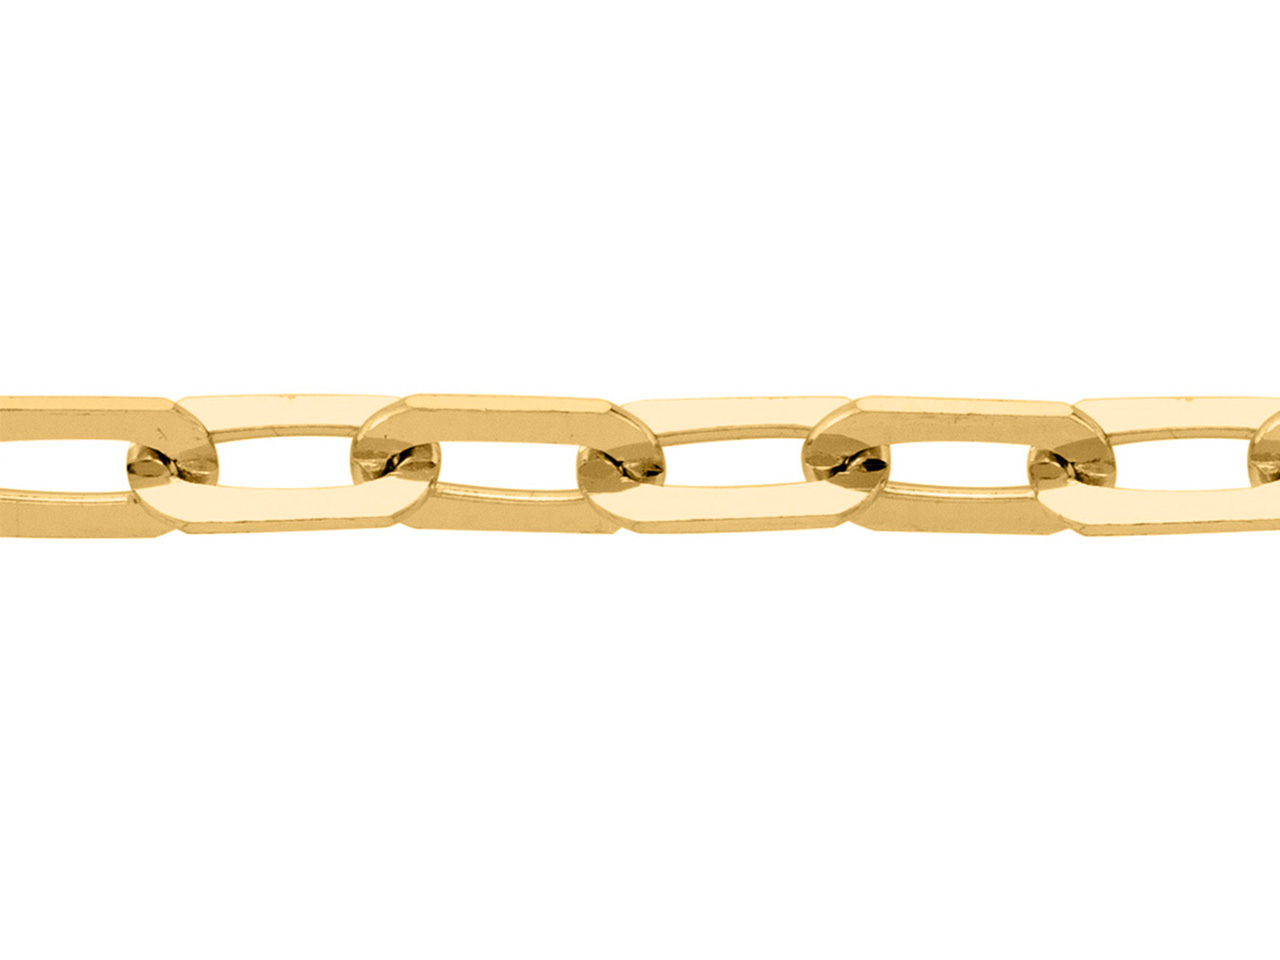 Chaine Maille rectangle 2,1 mm, Or jaune 18k. Réf. 002015